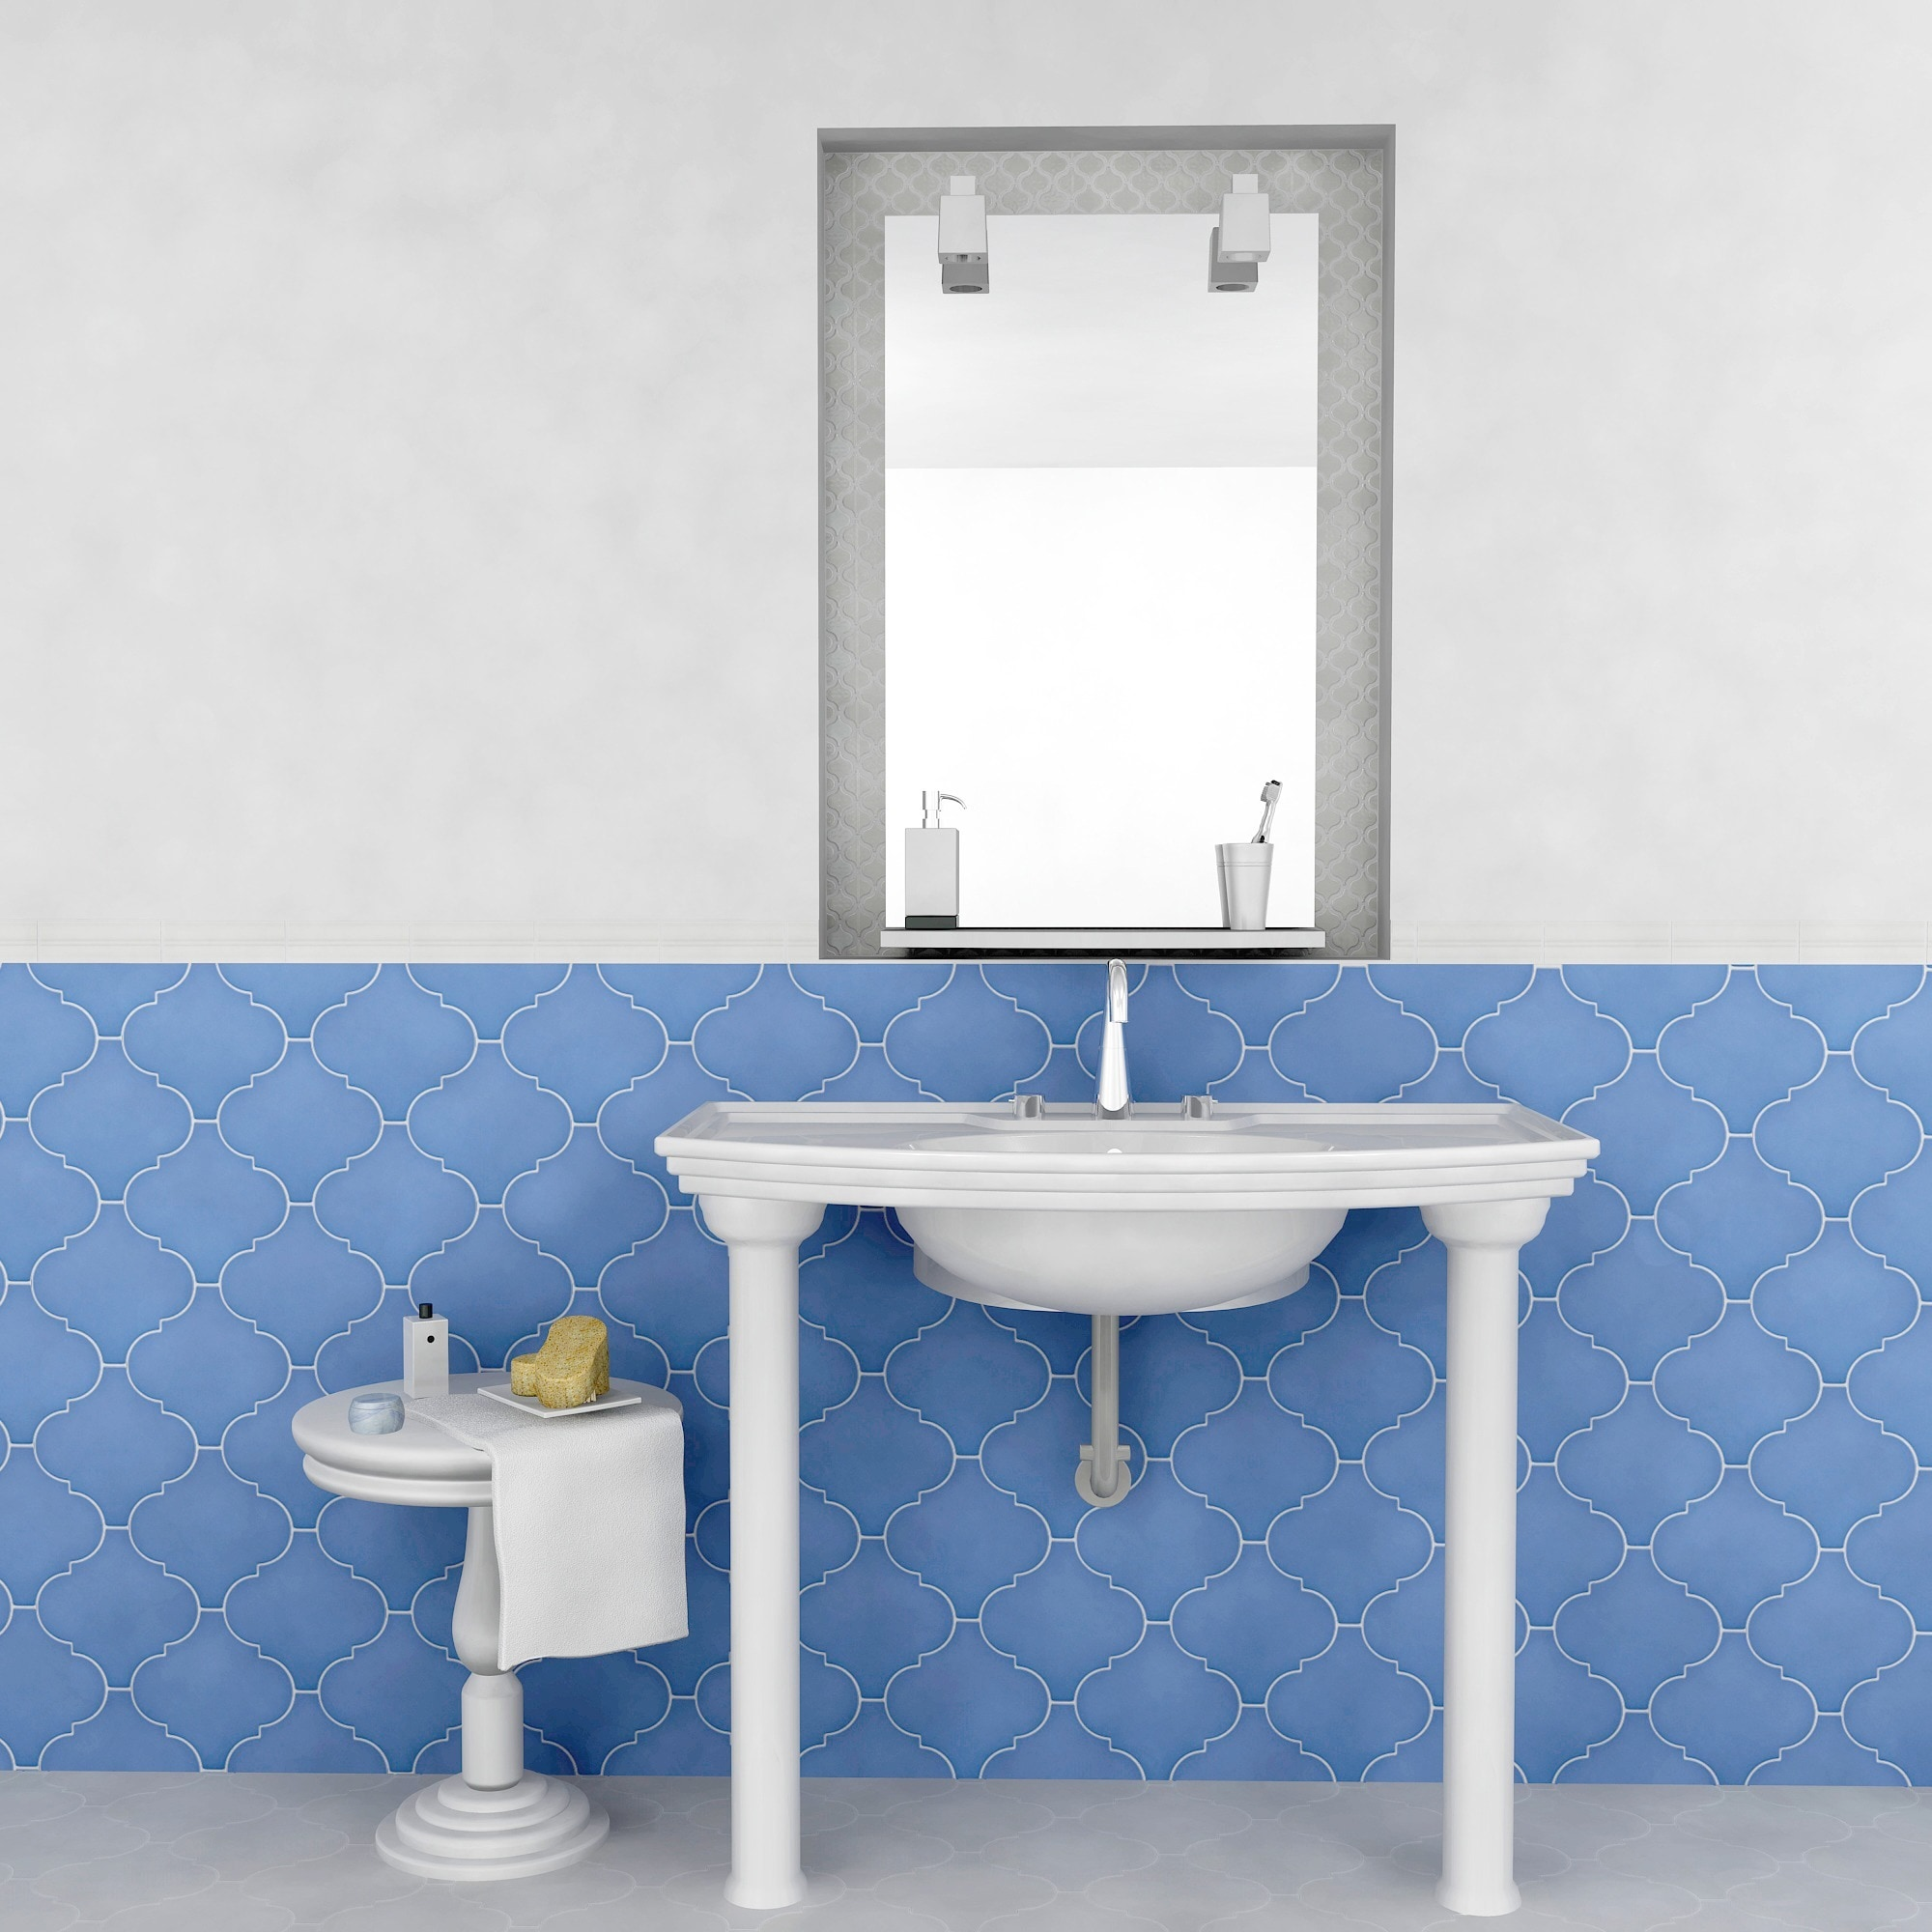 SomerTile 8x8-inch Morocco Provenzale Blue Porcelain Floor and Wall ...